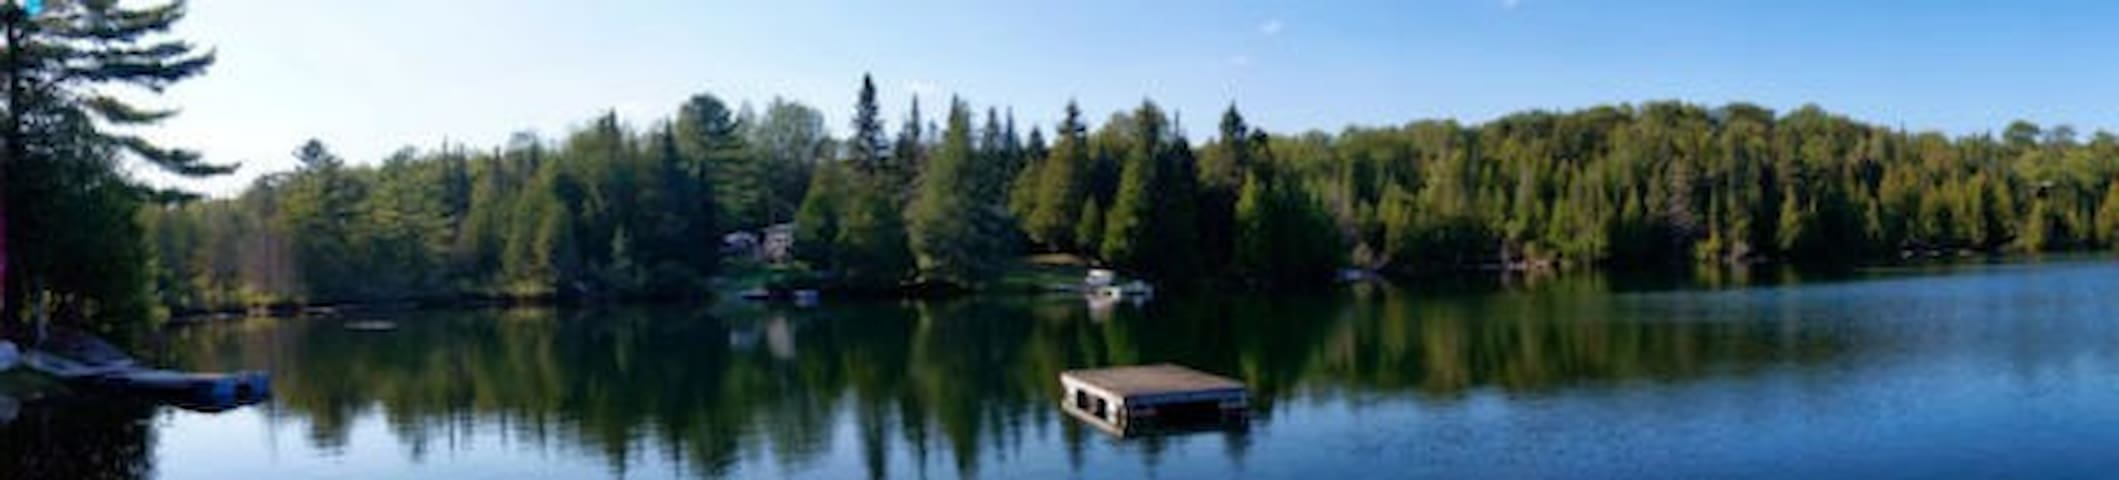 Cottage for rent on quiet lake - Duclos